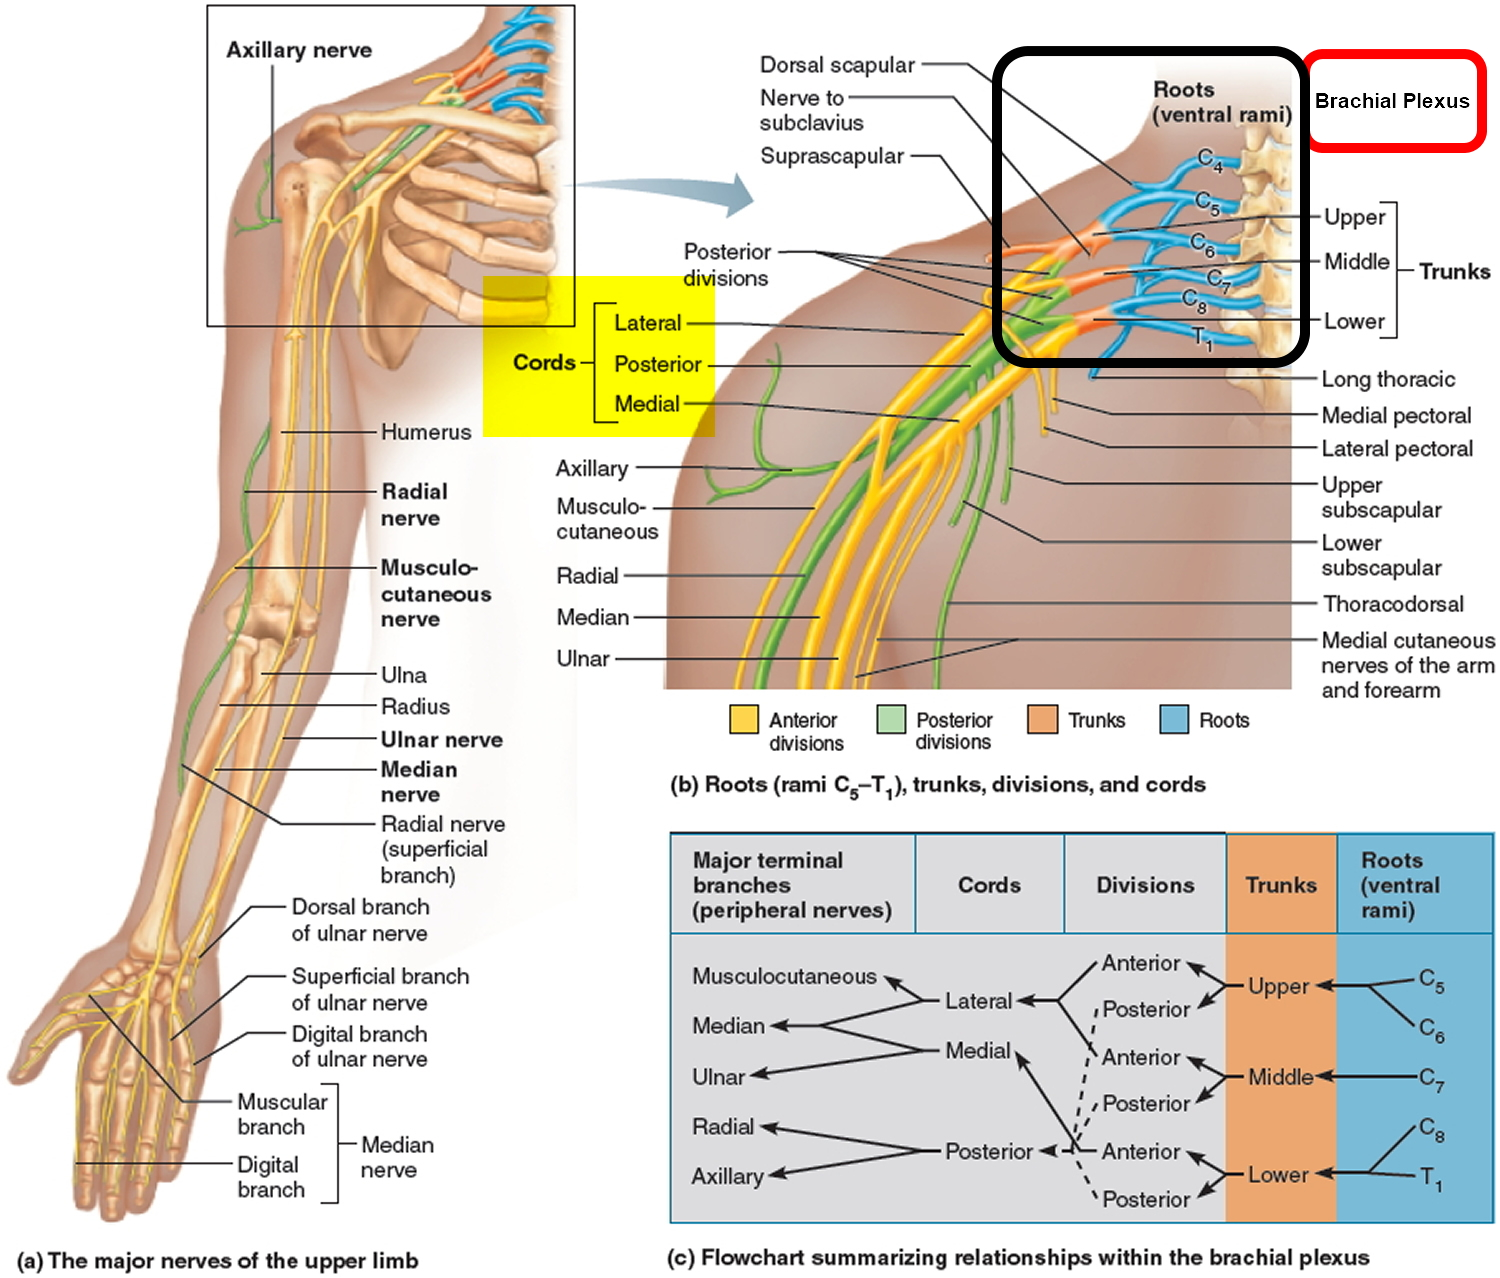 nerves in neck and shoulder diagram guitar wiring maker fender fat strat pinched nerve arm causes symptoms treatment herniated disk a herniates when its jelly like center nucleus pushes against outer ring annulus if the is very worn or injured